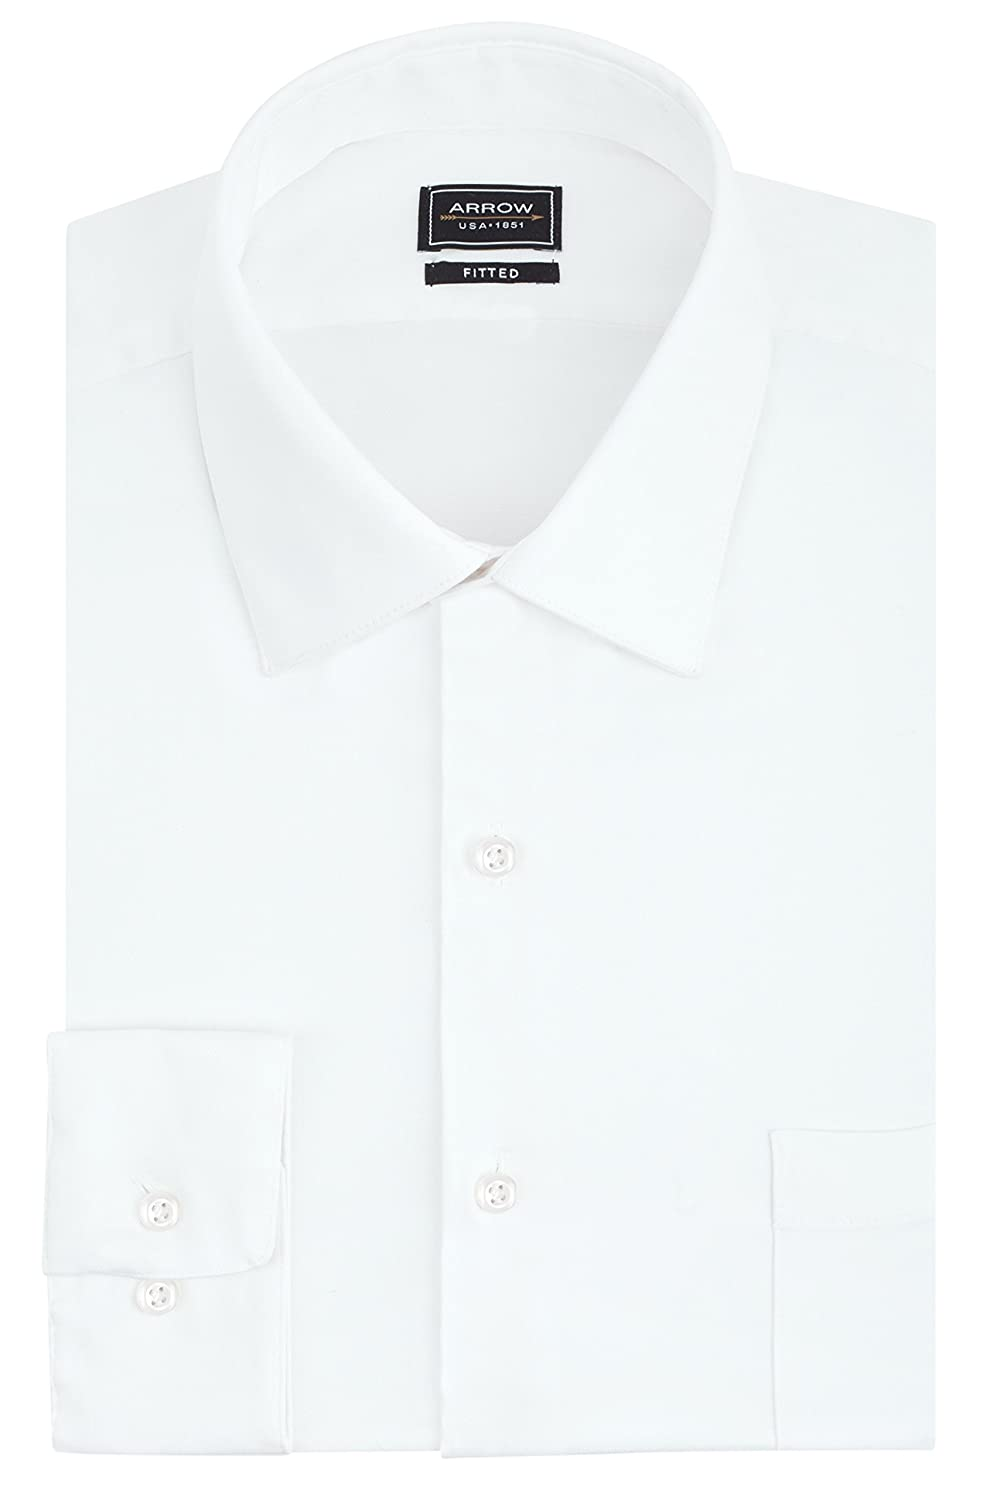 Arrow Men's Stretch Fitted Solid Spread Collar Dress Shirt 26W5479